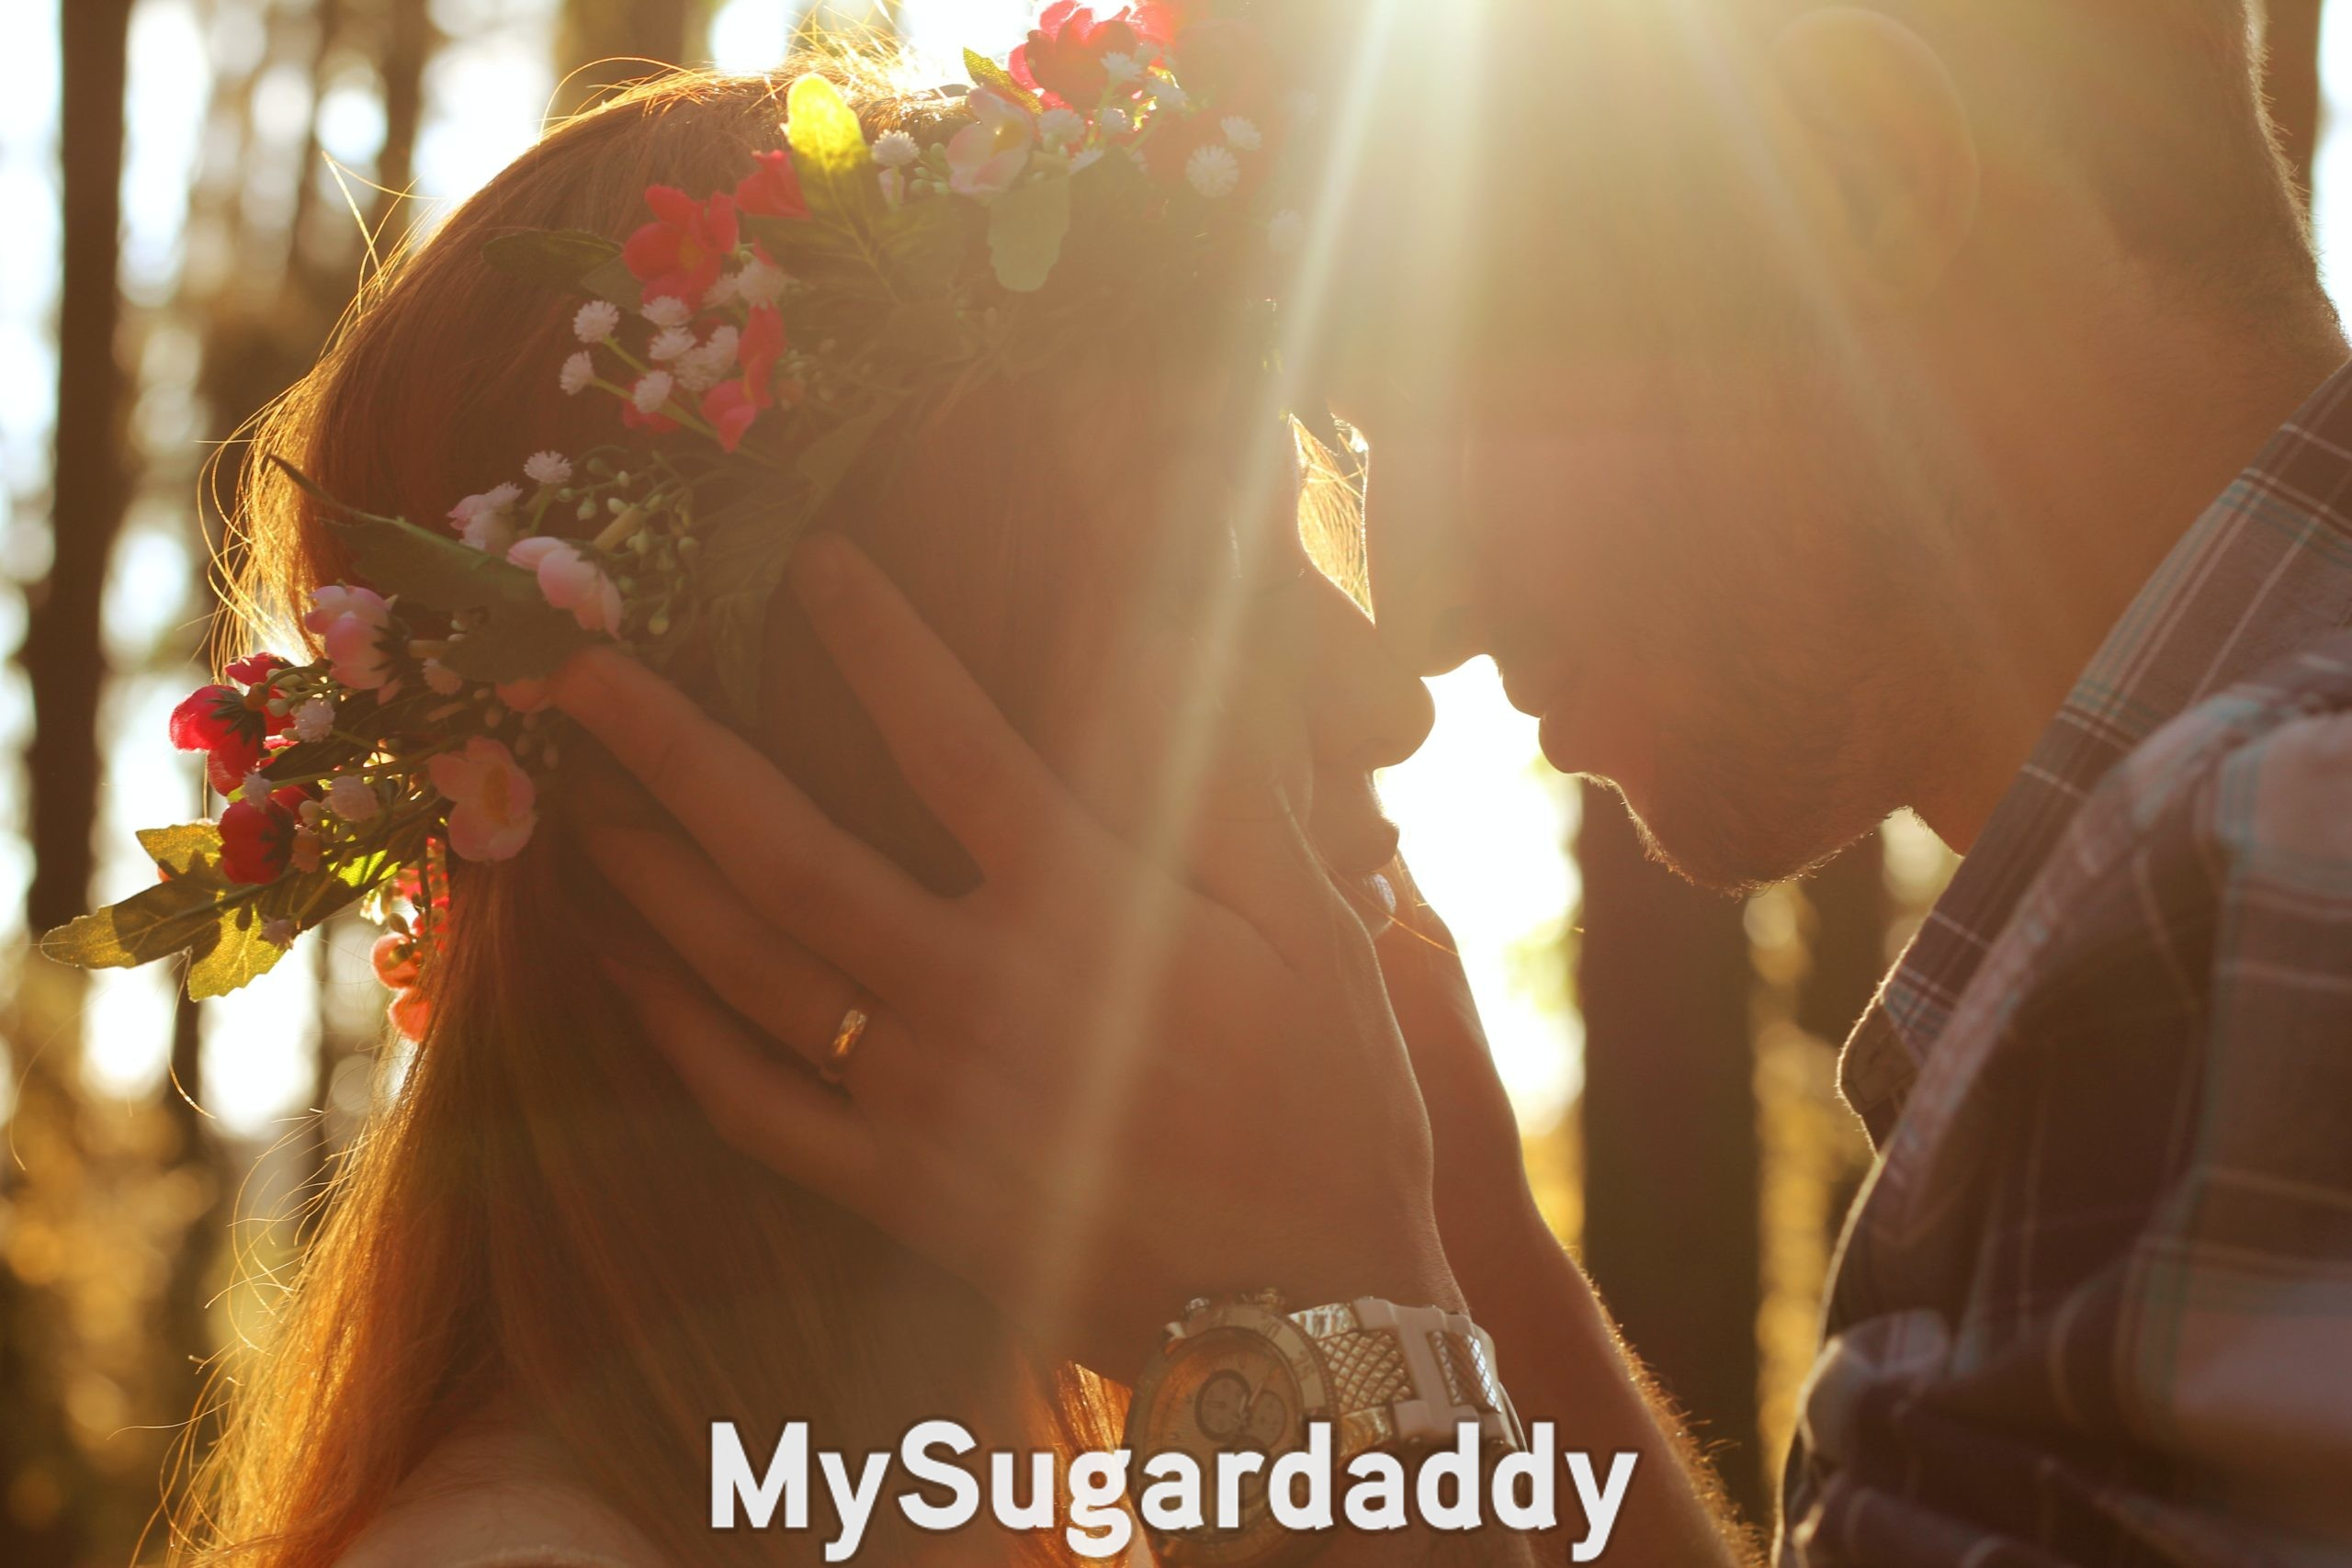 reliable sugar daddy helping sugar baby feel less anxious